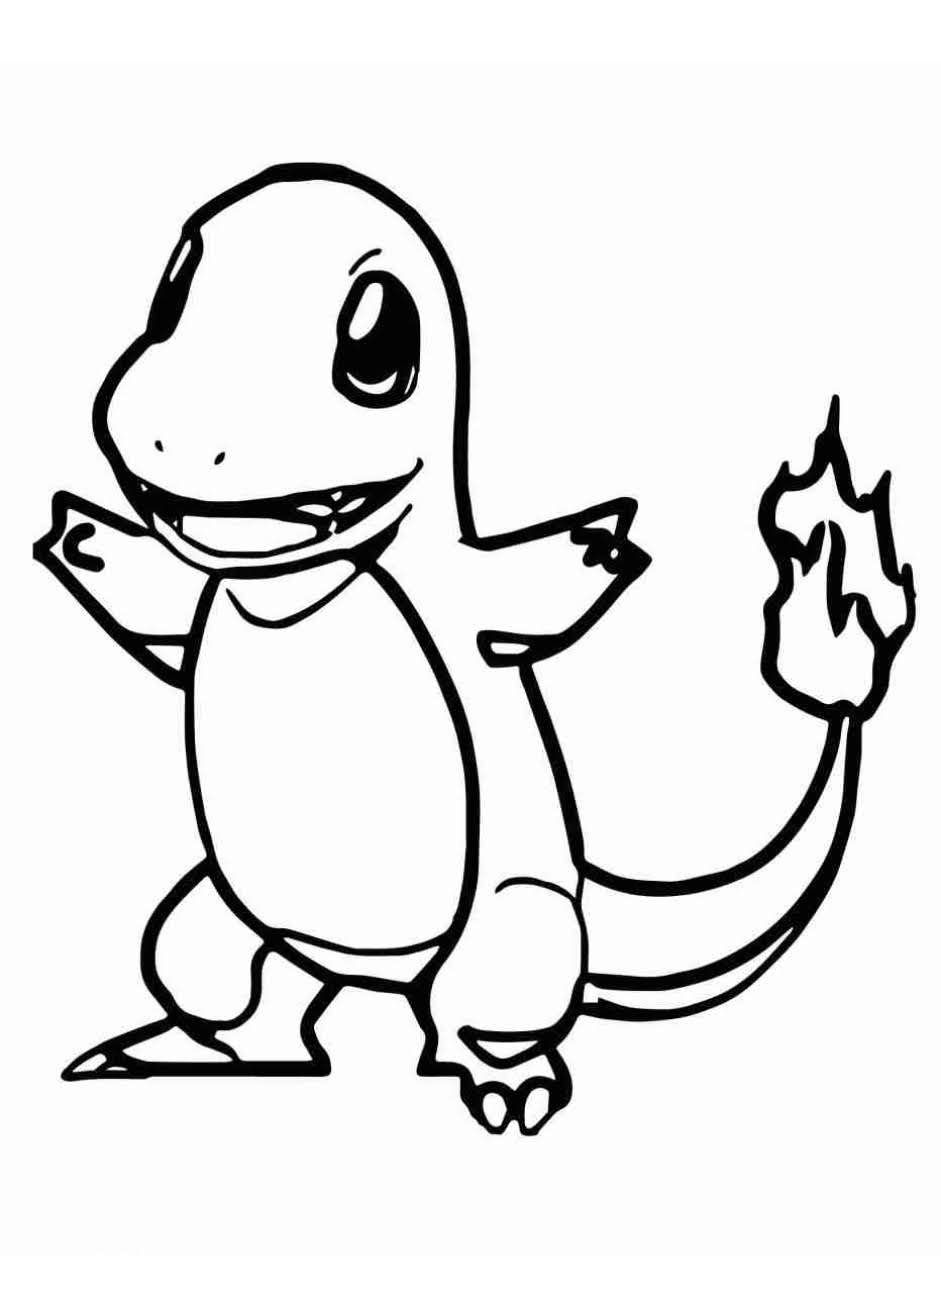 Pokemon Coloring Pages Charmander : pokemon, coloring, pages, charmander, Pokemon, Charmander, Coloring, Sheets, Coloring,, Pages,, Pikachu